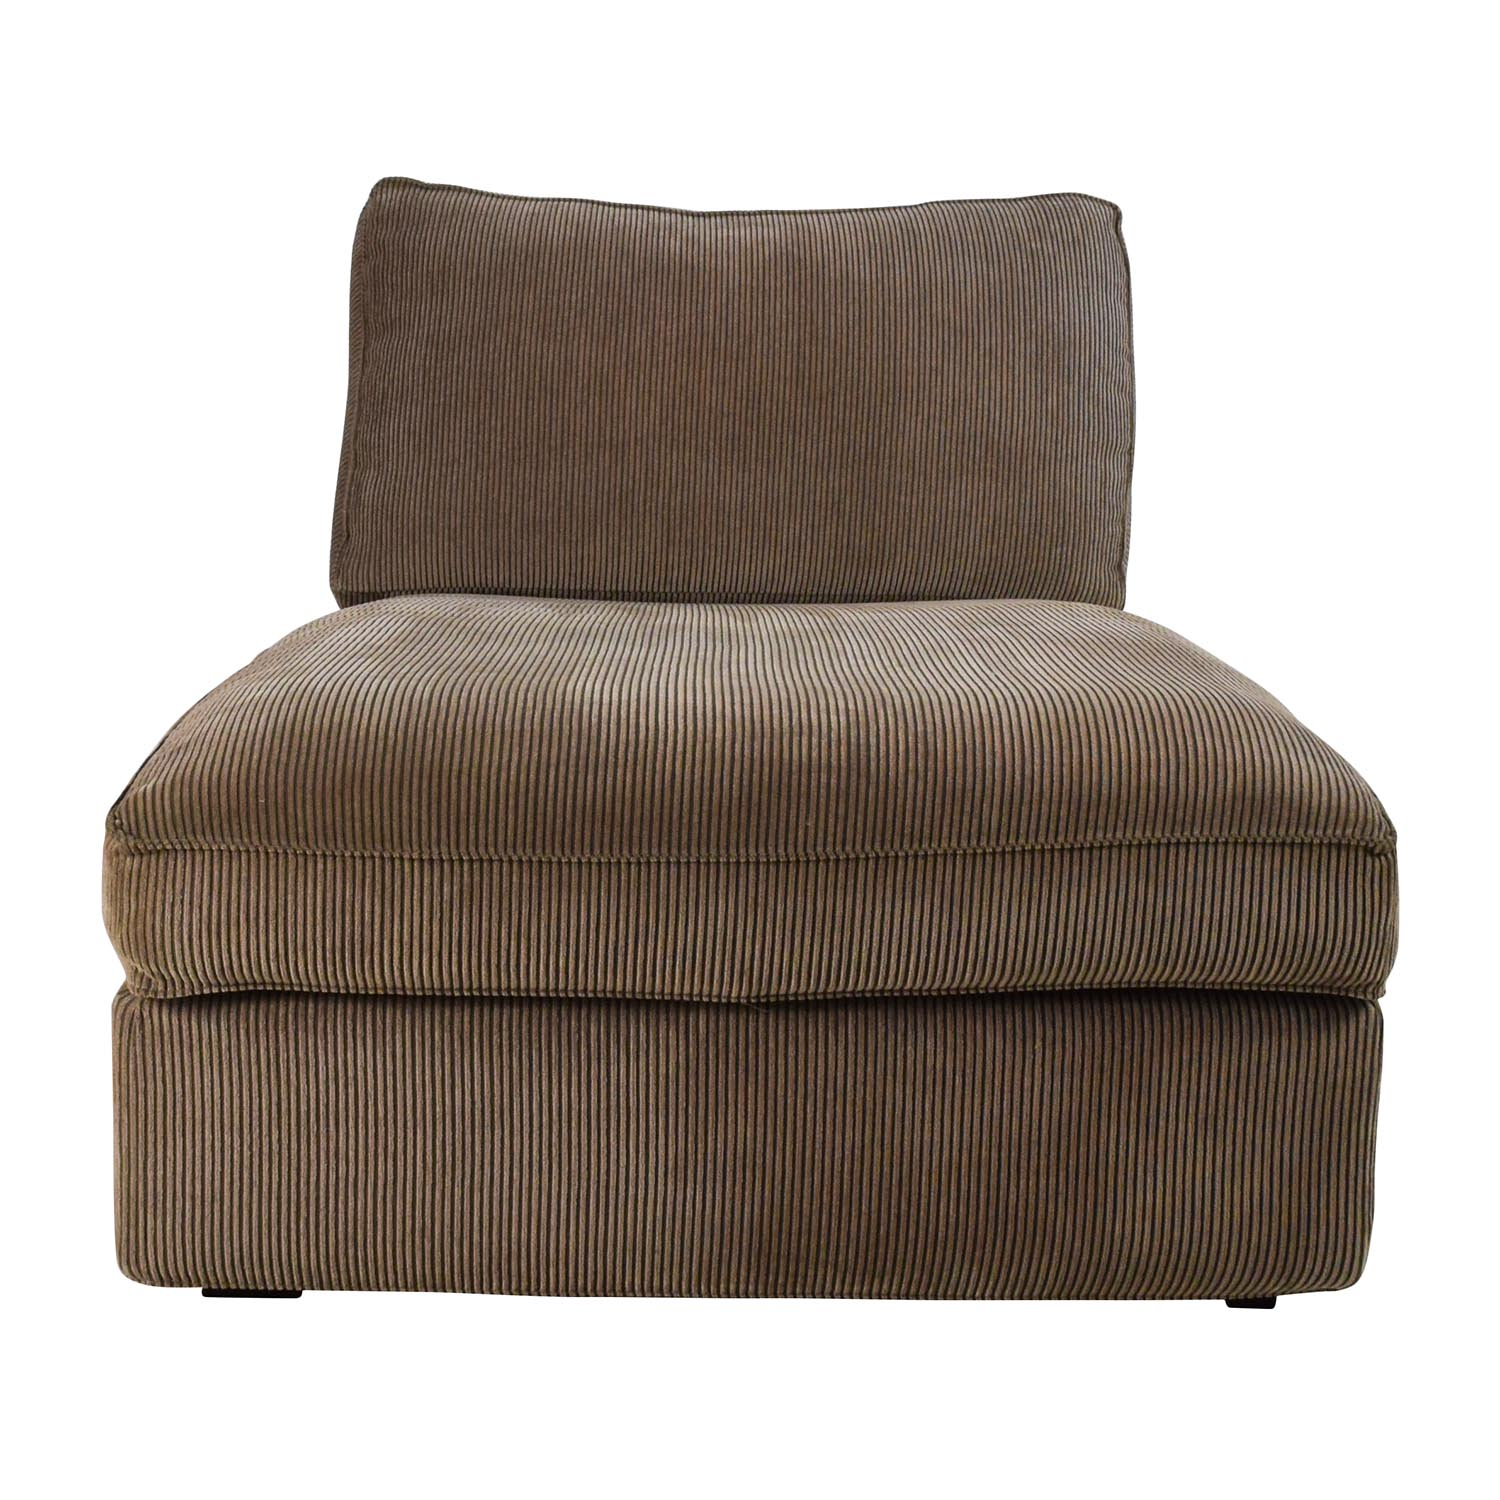 Chaiselongue ikea  83% OFF - IKEA IKEA KIVIK Chaise Lounge / Sofas